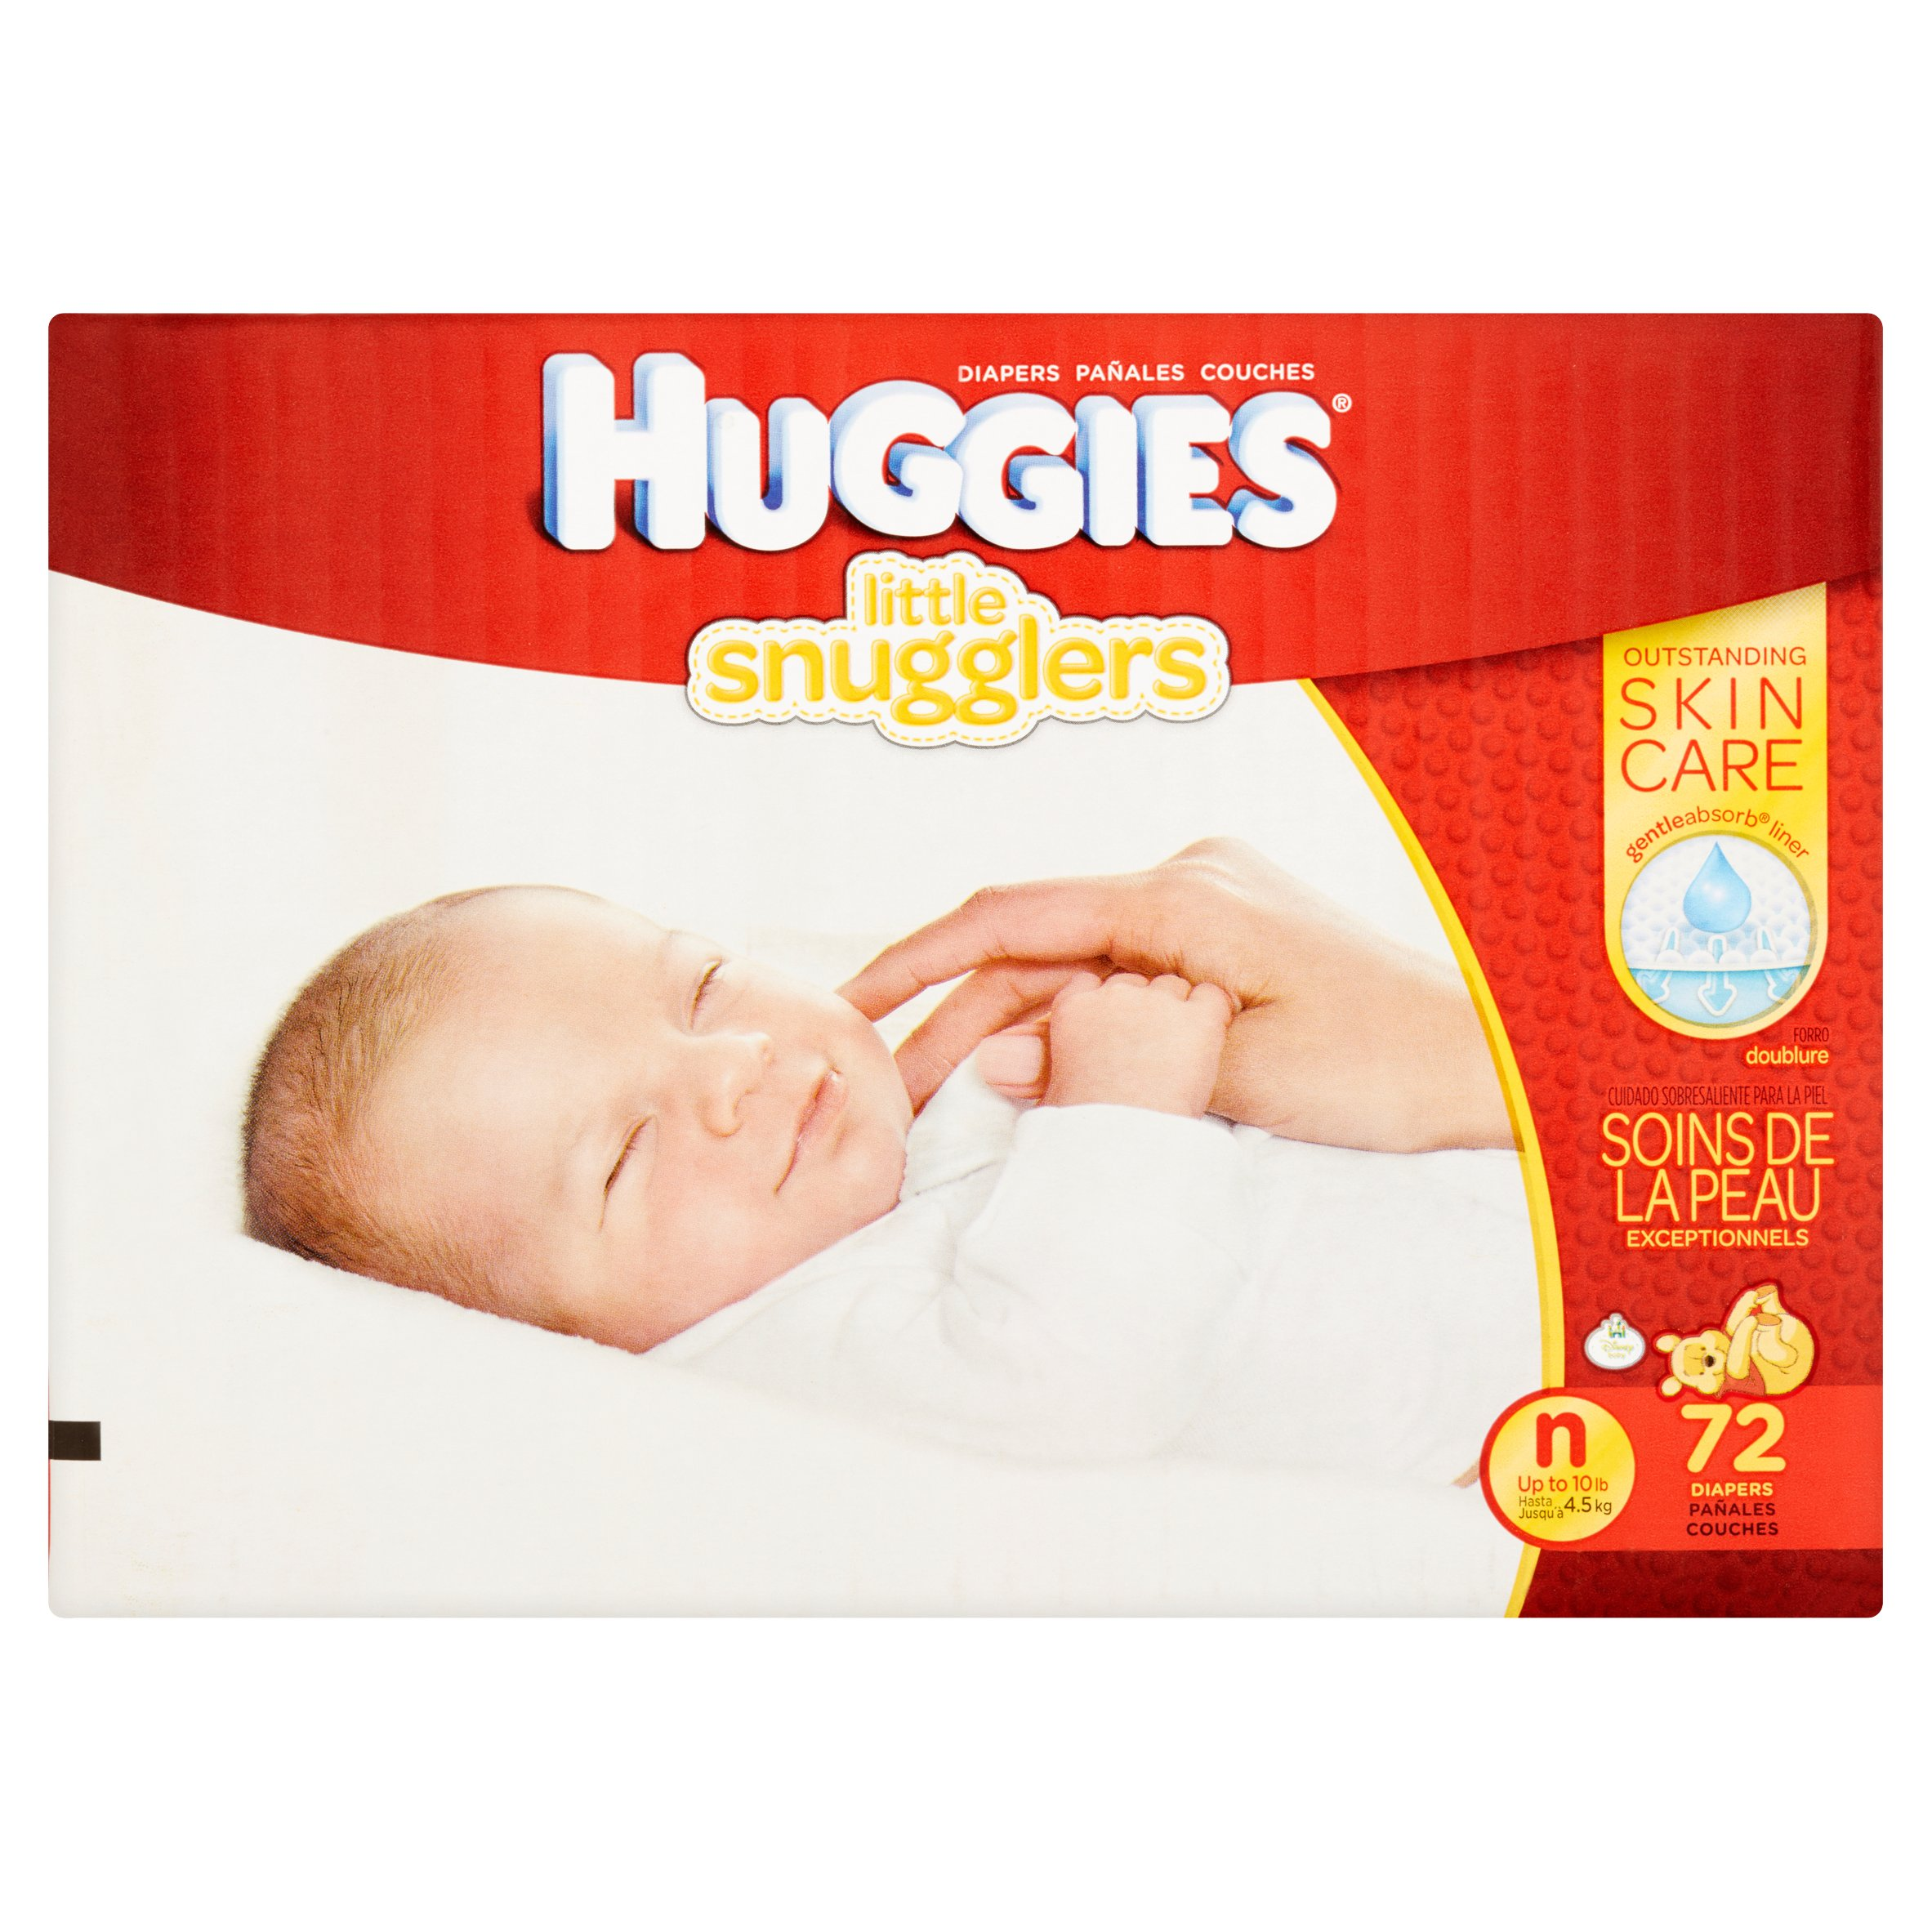 HUGGIES Little Snugglers Diapers, Newborn, 72 Diapers